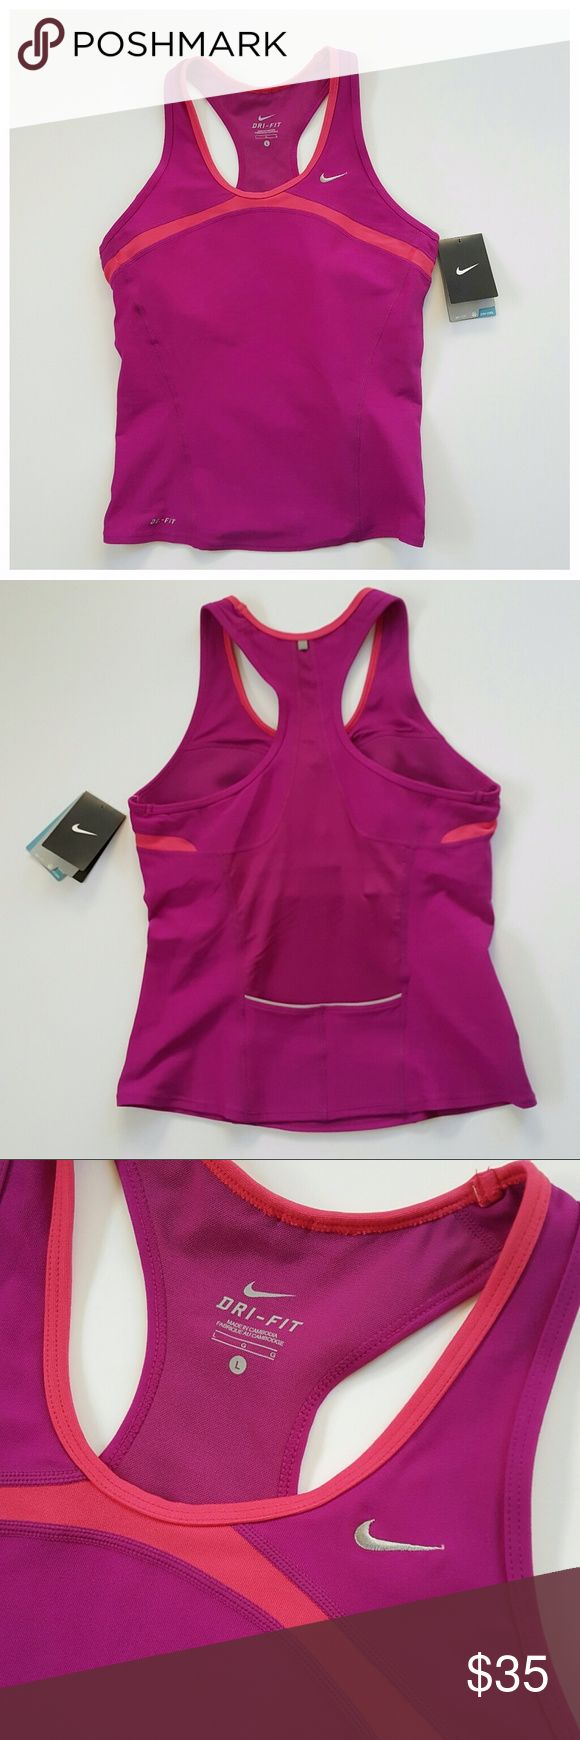 NWT NIKE Purple/ Pink Dri Fit Run Tank SIZE LARGE - CONDITION : NEW WITH TAGS  - BRAND : Nike  - COLOR : pink accent, purple body  - COMPOSITION: polyester and Spandex  - MEASUREMENT : SIZE LARGE  - DETAILS : back pocket, built in bra support Nike Tops Tank Tops